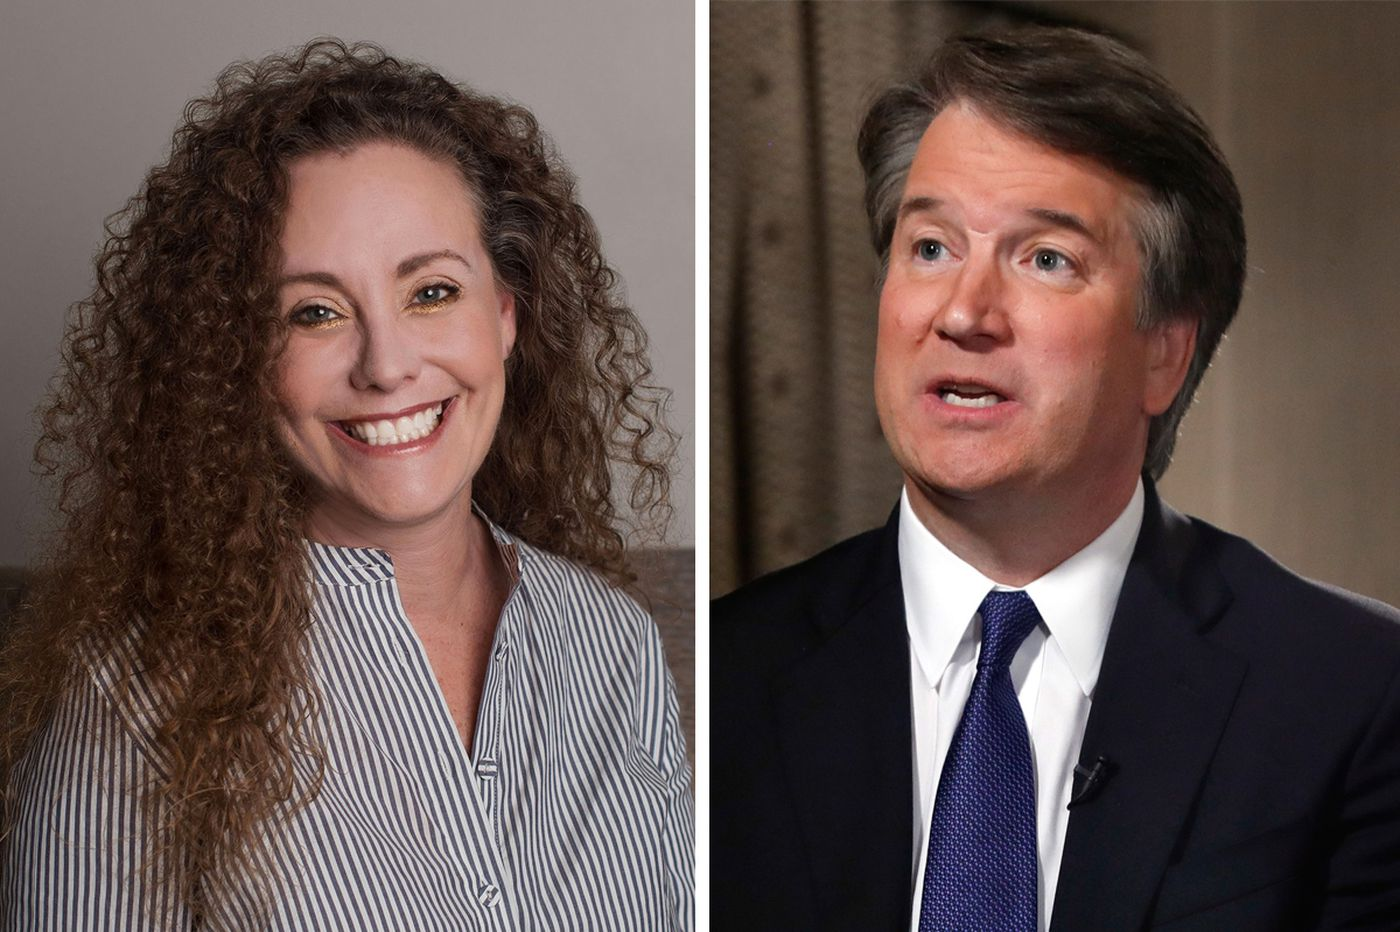 New Brett Kavanaugh accuser, Julie Swetnick, comes forward with explosive new allegations